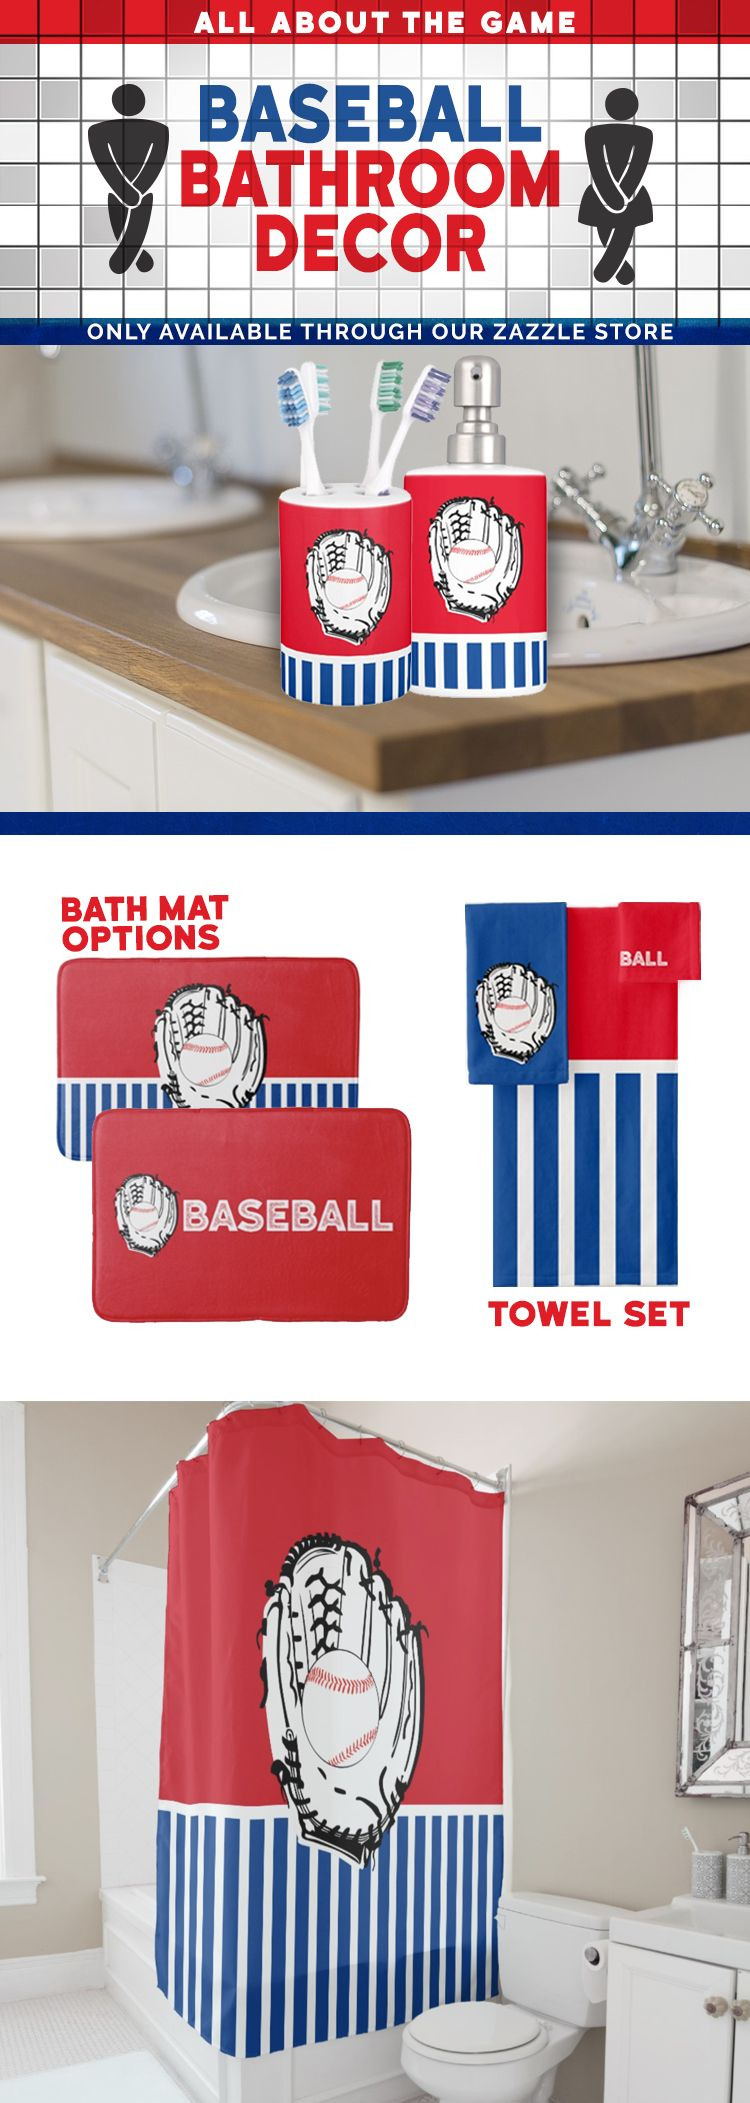 Baseball Bathroom Decor Awesome Score A Win with This Baseball Bathroom Set Read More About